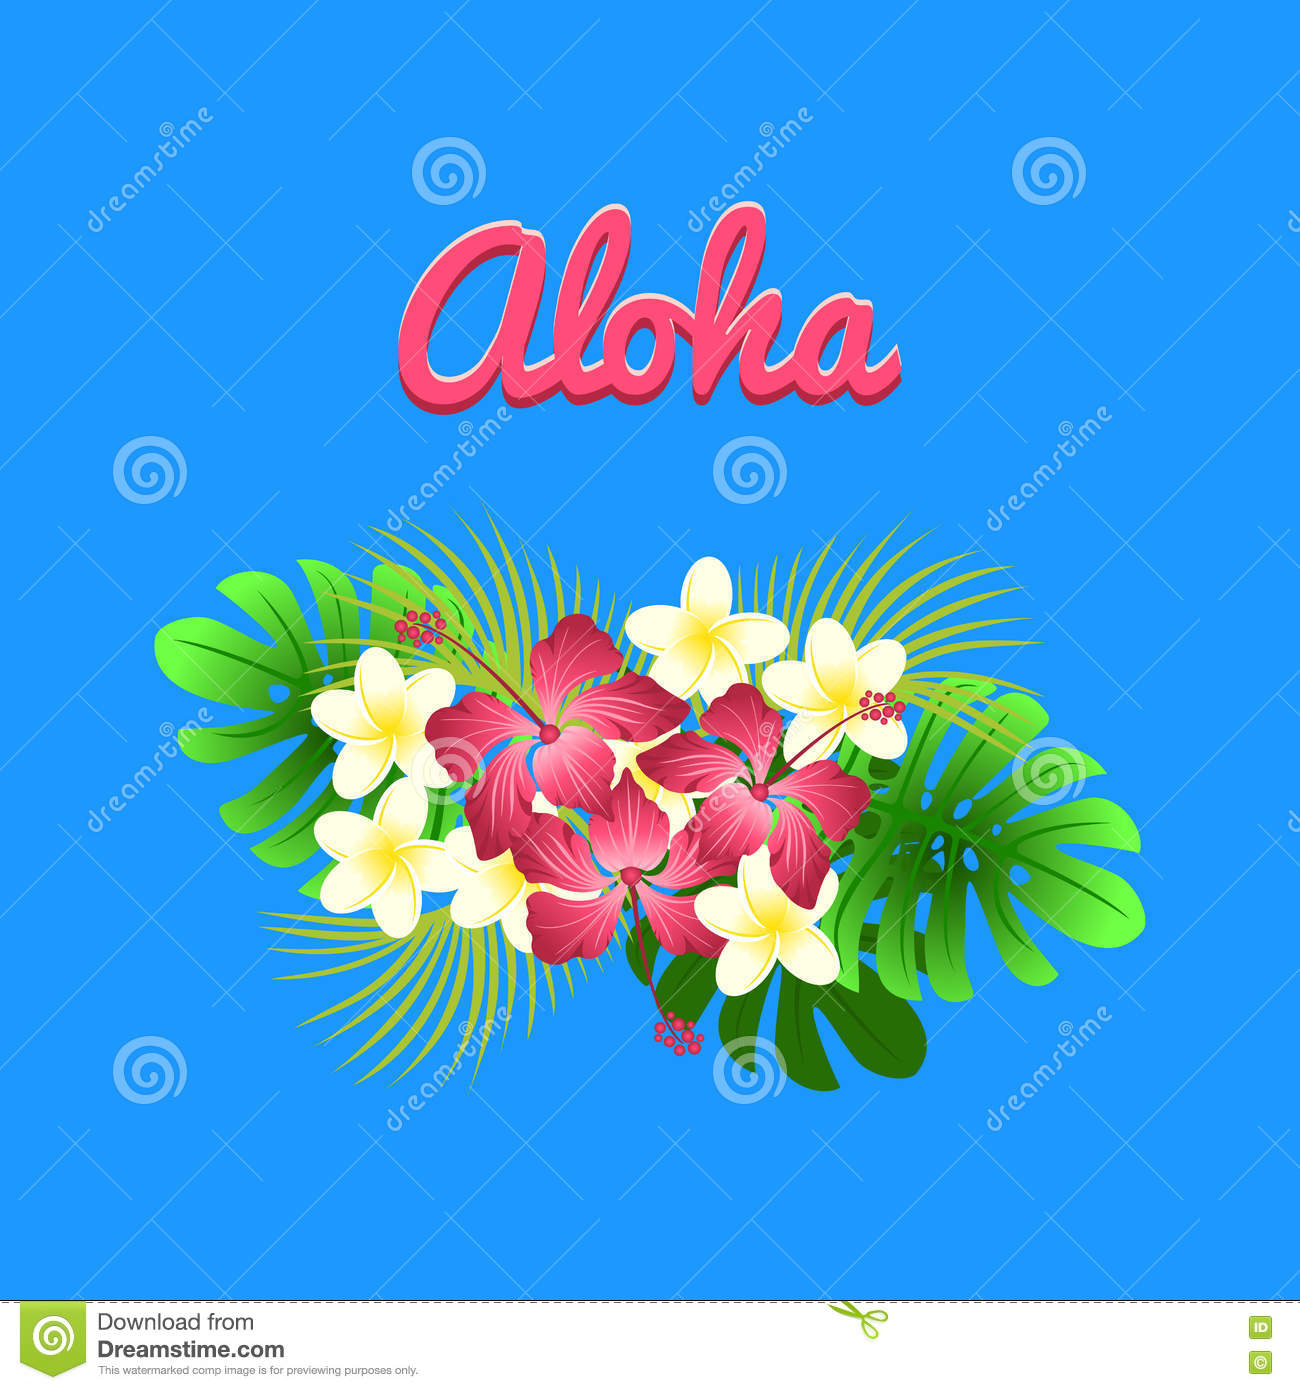 34a000c46 Aloha hibiscus flower as a symbol of Hawaii, colorful vector flat  illustration